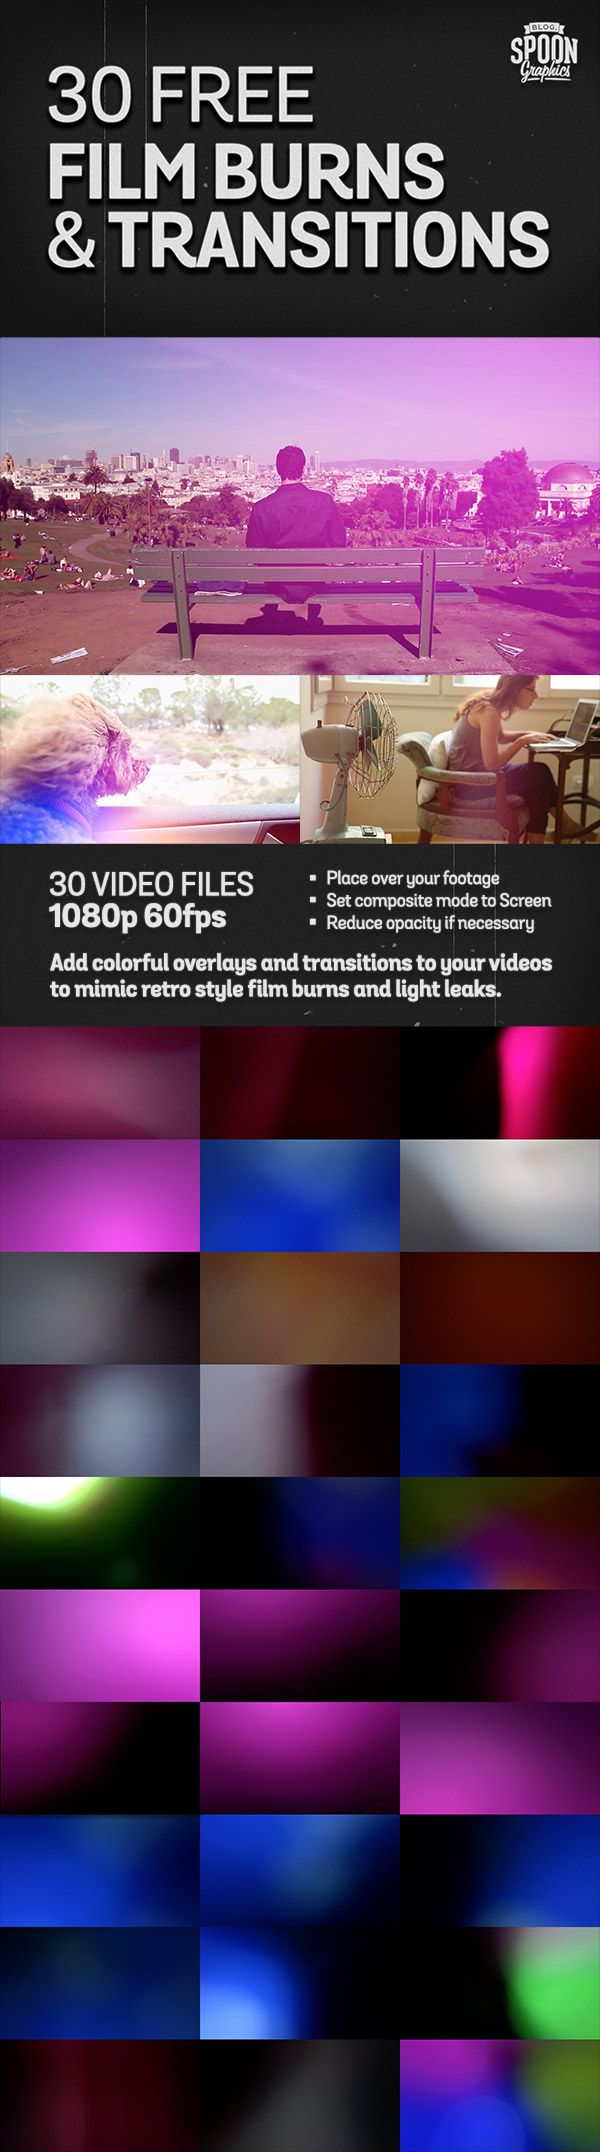 30 Free Film Burns and Transitions for Video Editing